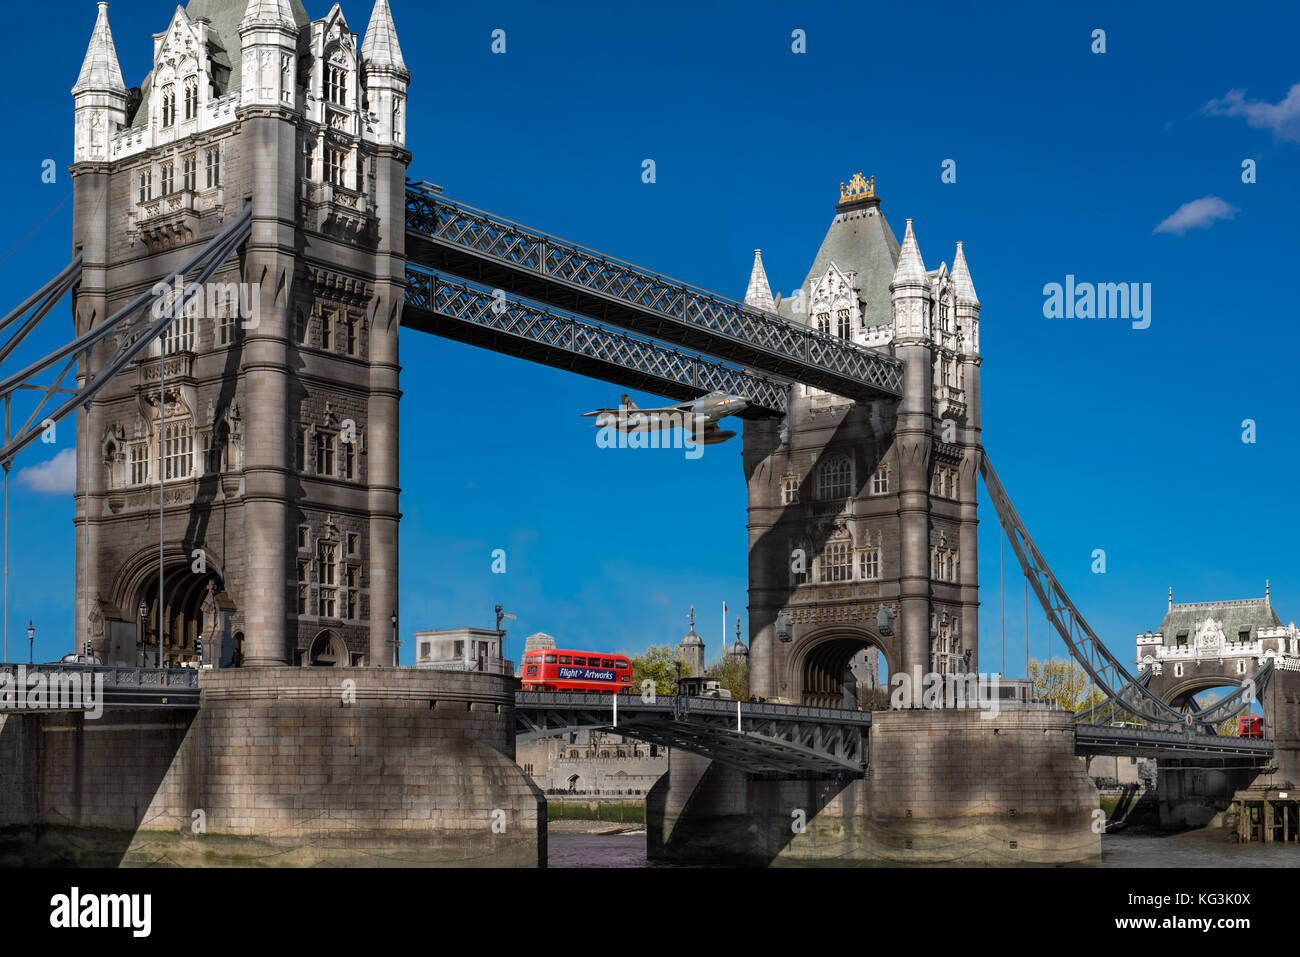 On 5 April 1968 RAF fighter pilot Alan Pollock flew his Hawker Hunter jet through Tower Bridge in London as a protest - Stock Image